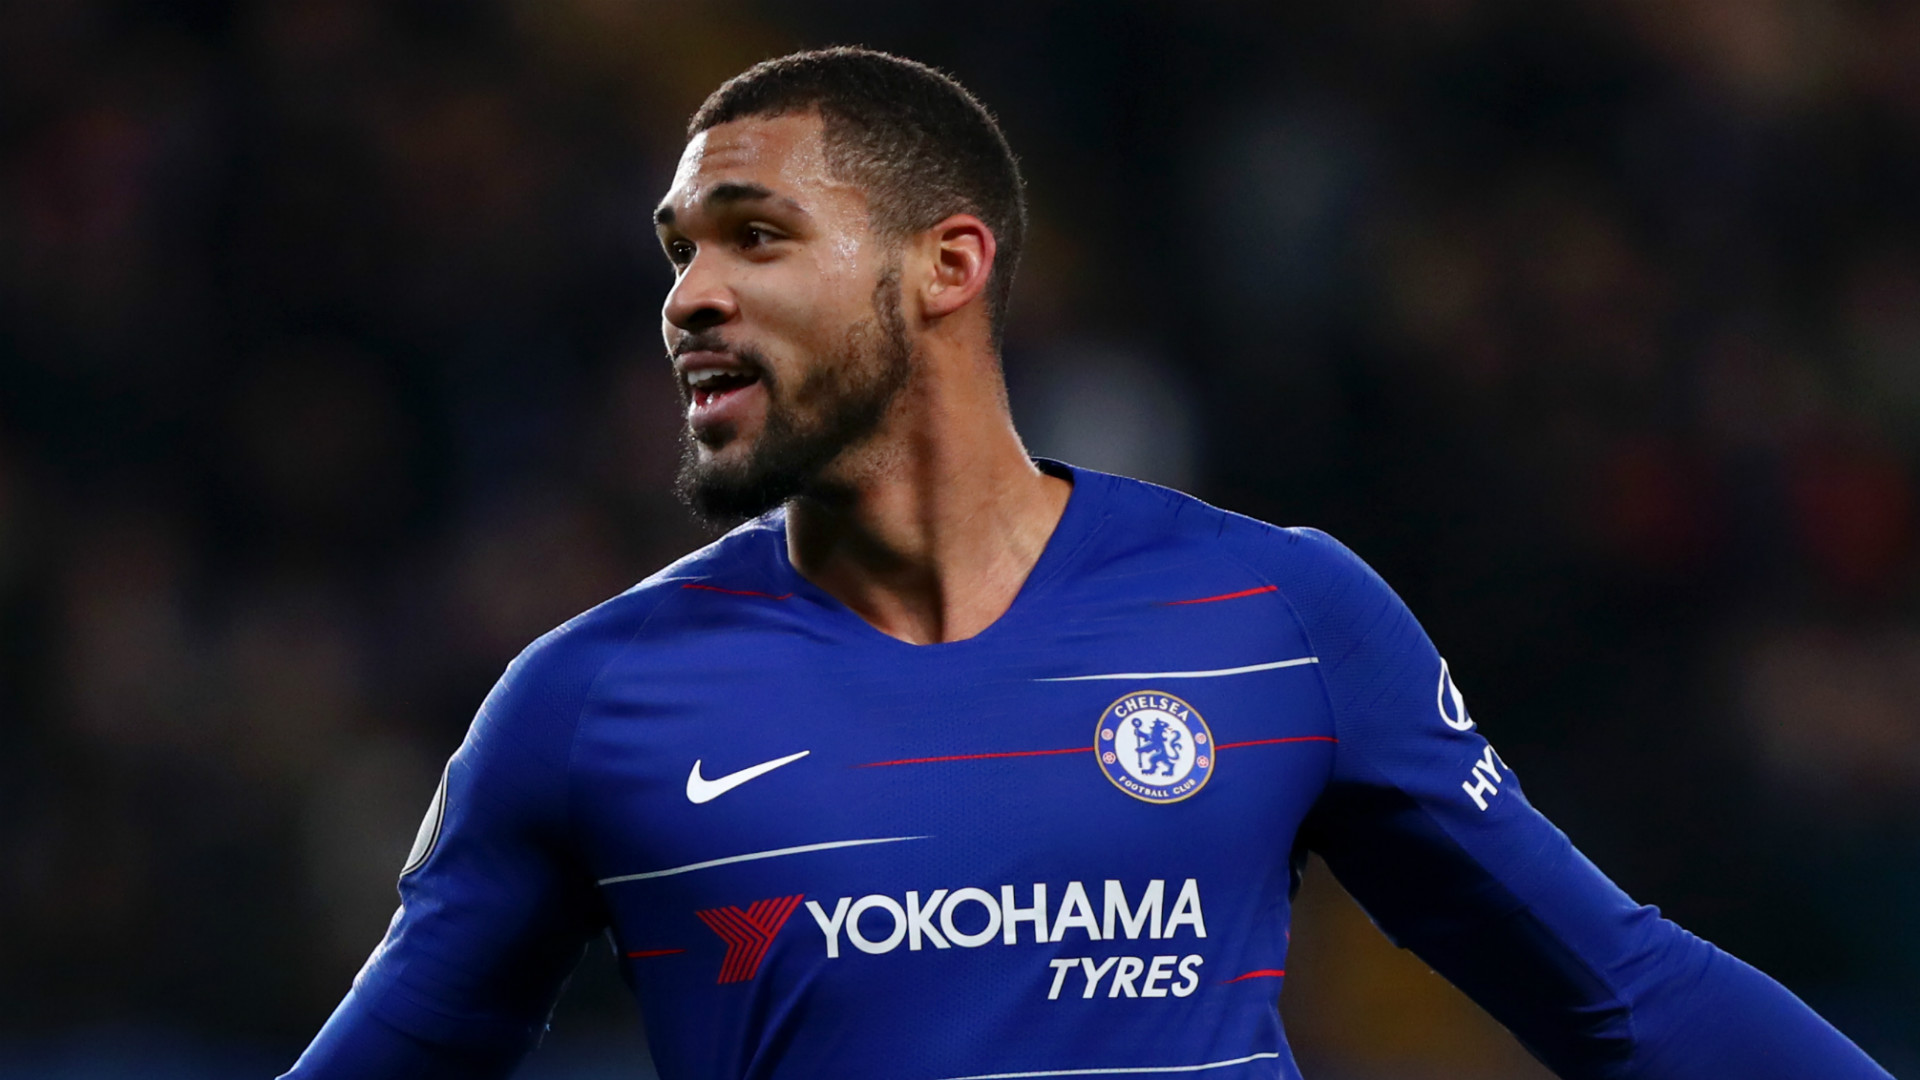 Loftus-Cheek another who has had to change his game for Sarri at Chelsea